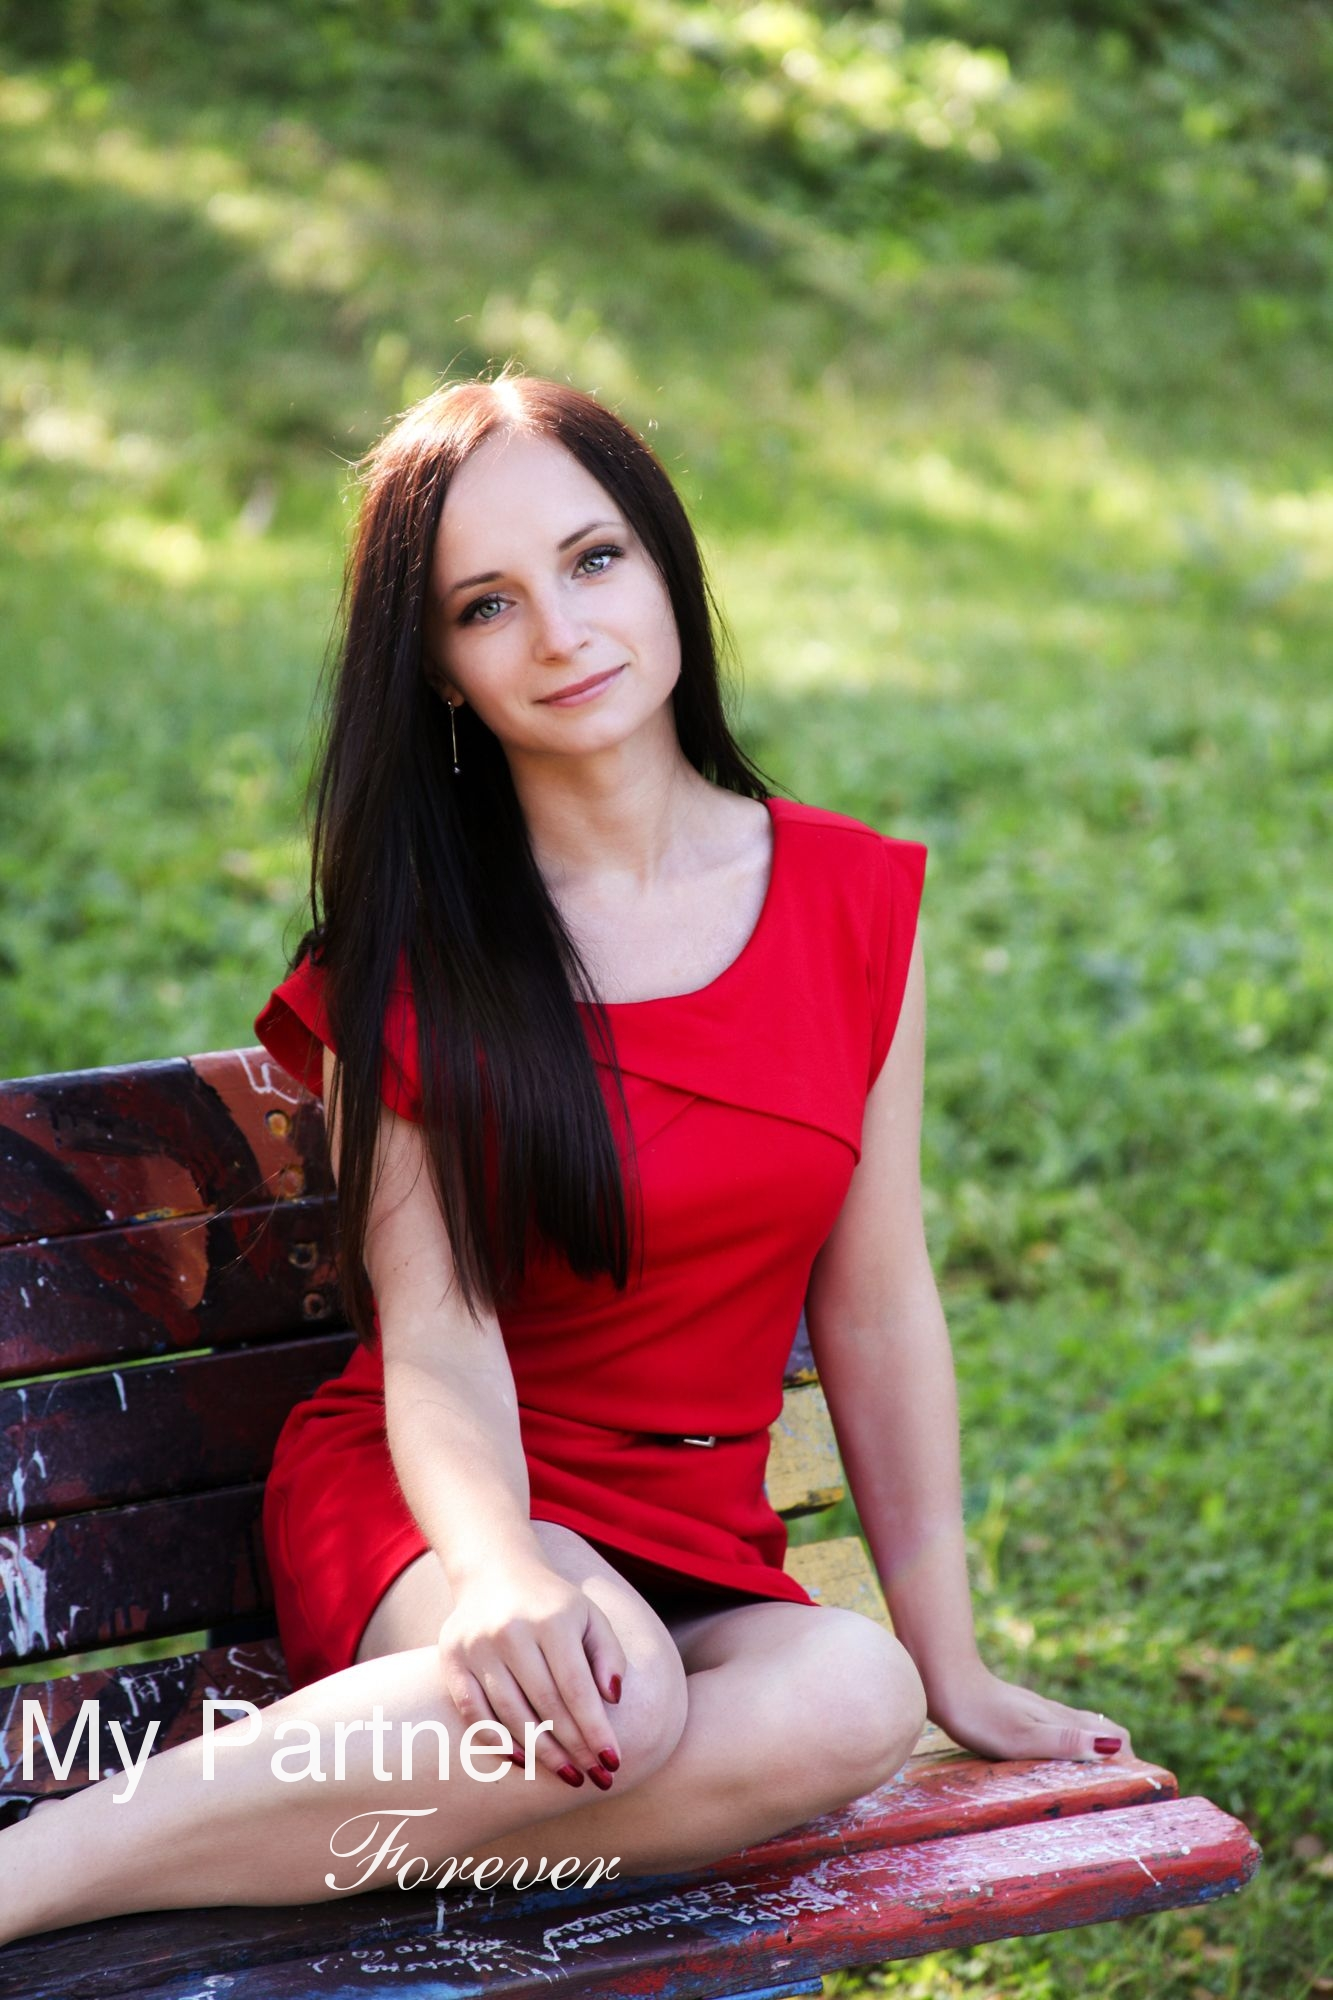 Dating Service to Meet Charming Russian Woman Kseniya from St. Petersburg, Russia